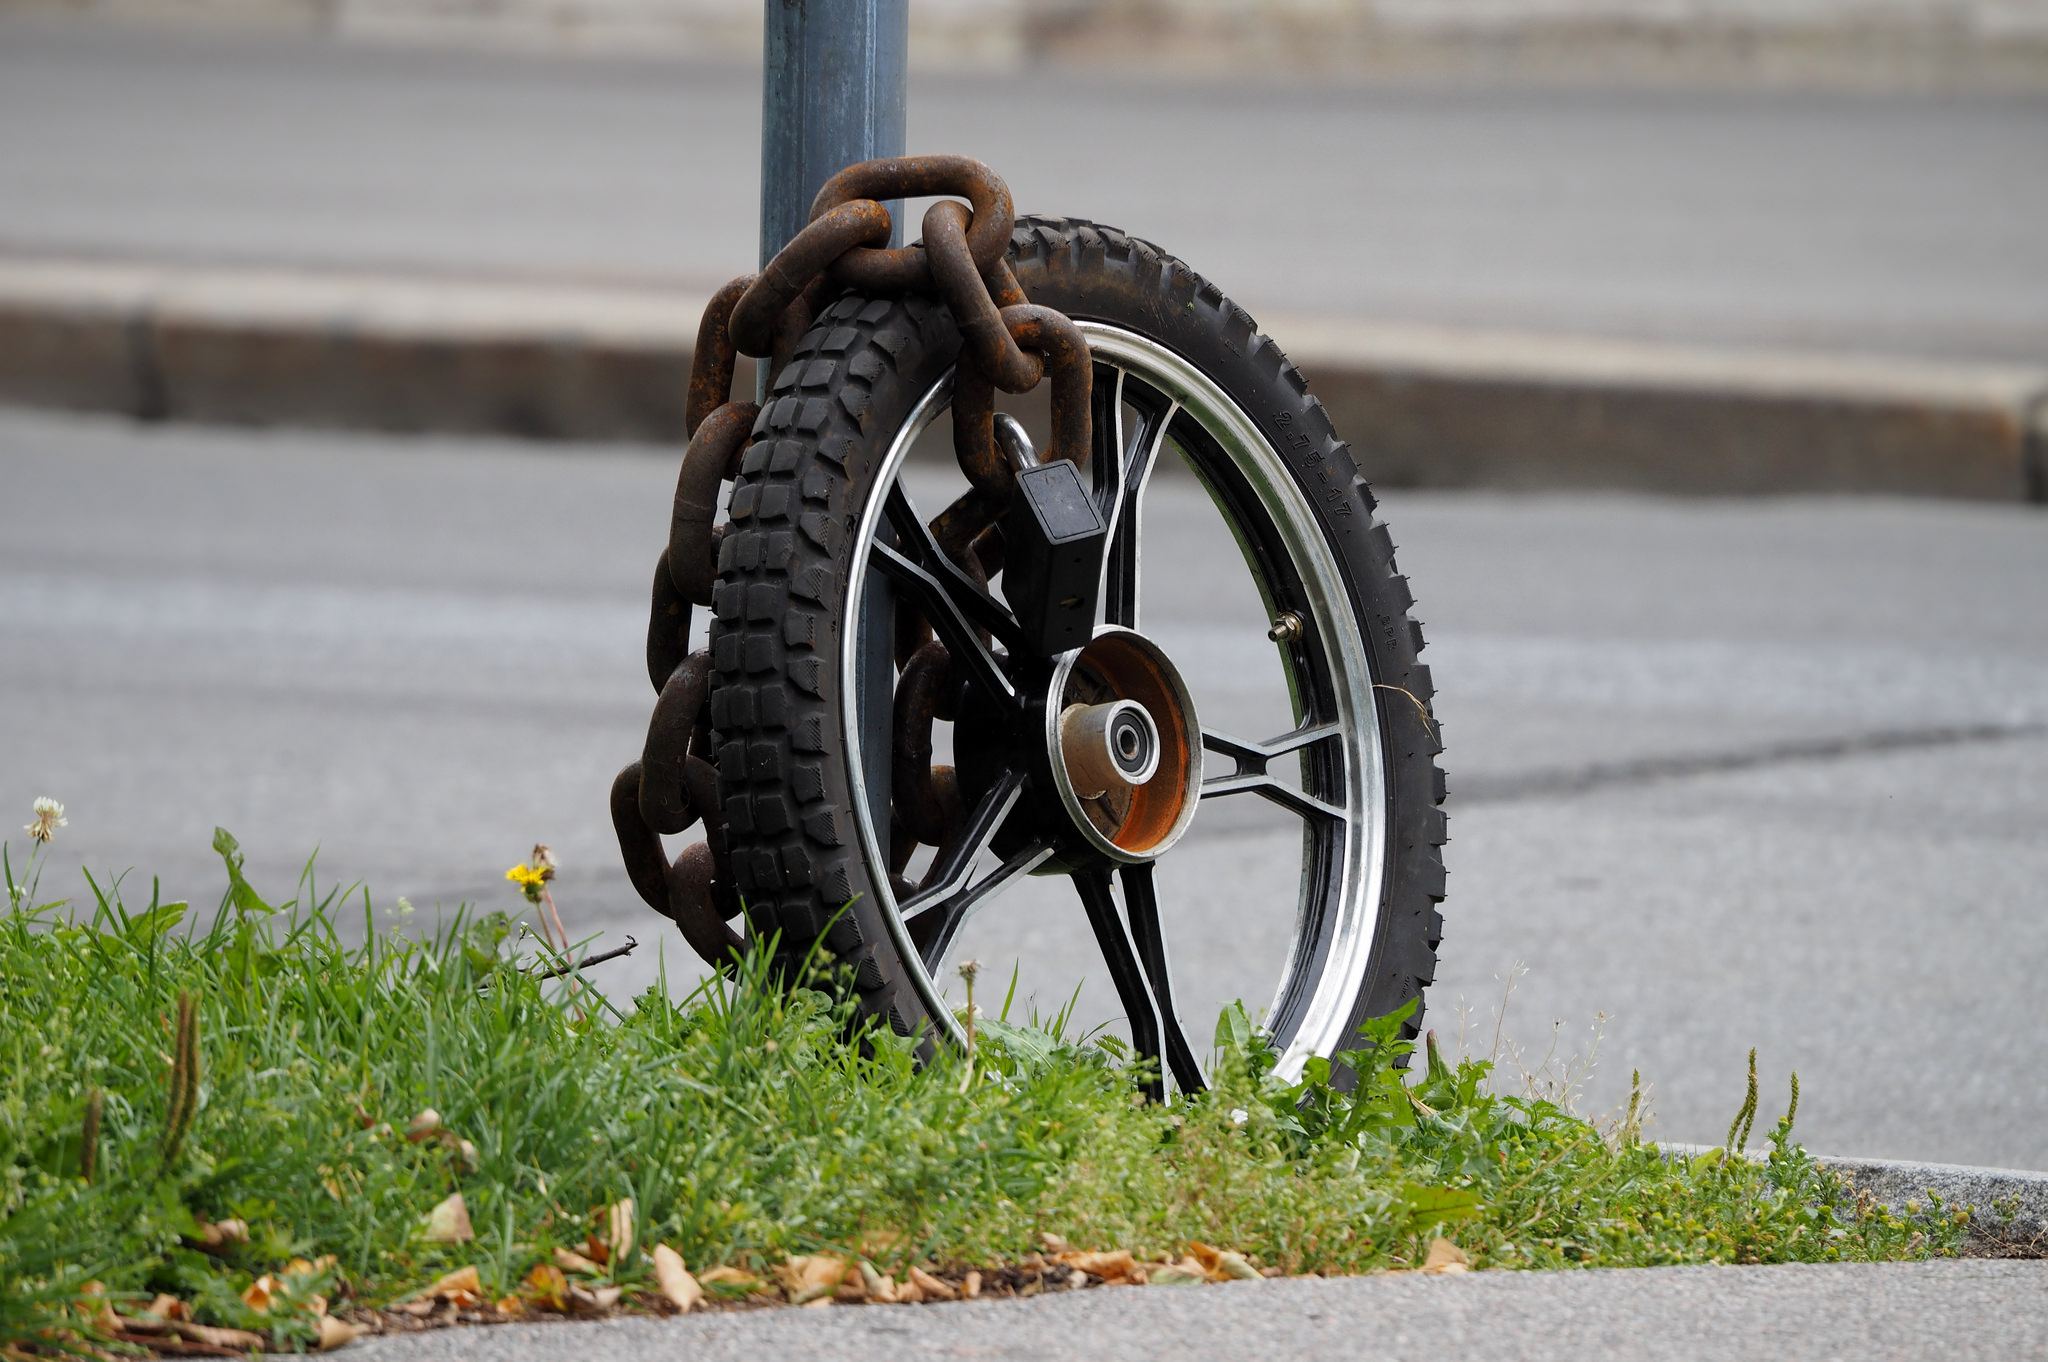 A picture of a single bicycle wheel chained up on a pole. Fail by Sergey Kochkarev on Flickr